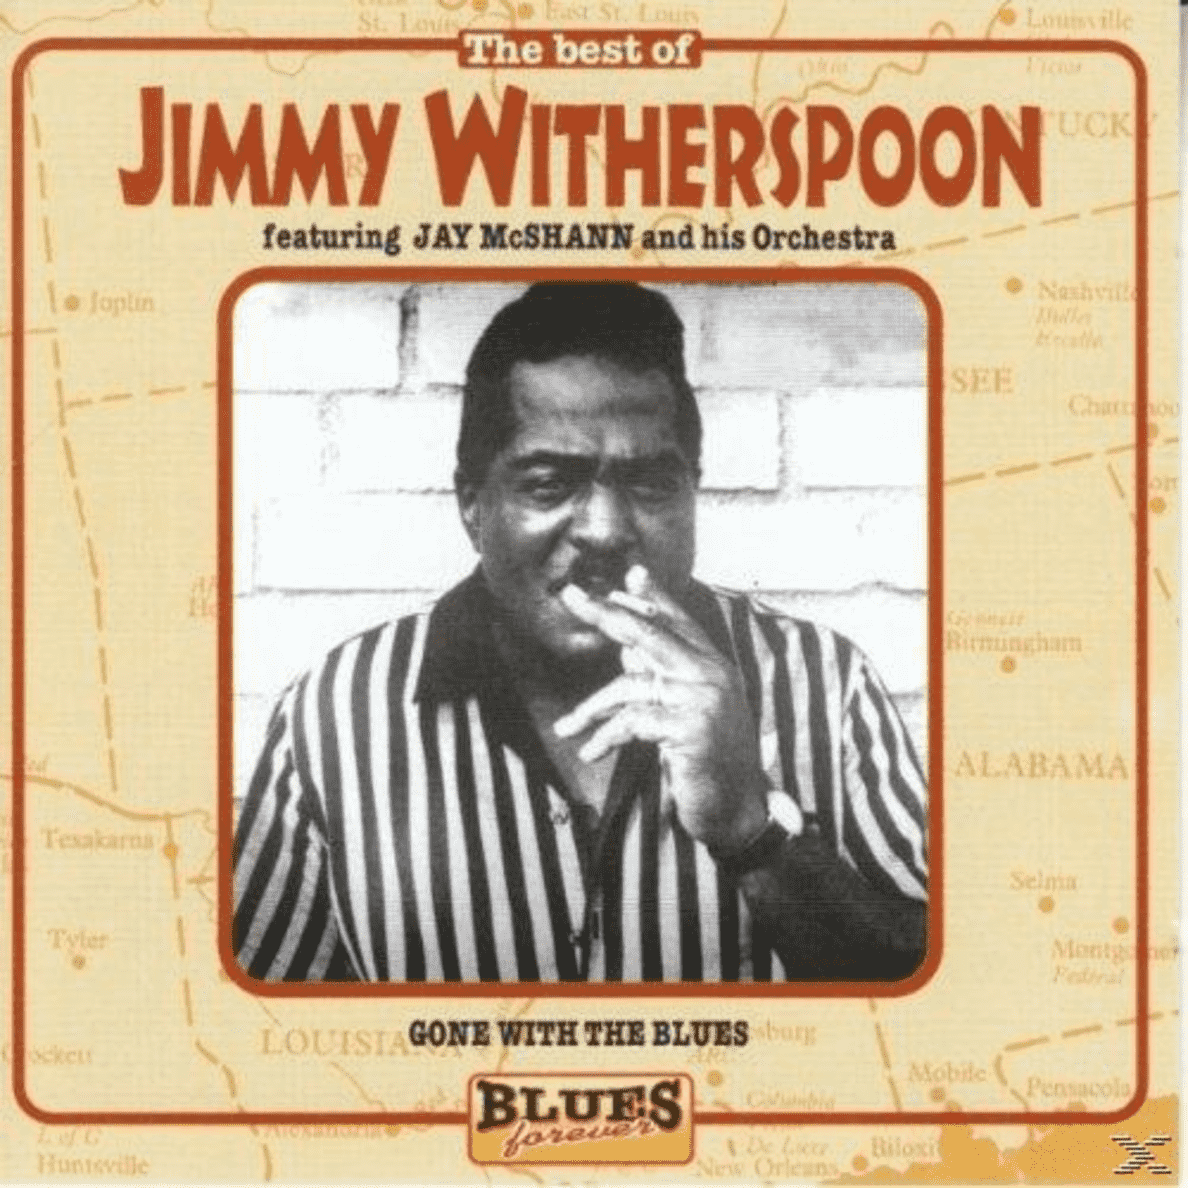 Jimmy Witherspoon, Jay McShann & His Orchestra - The Best Of Jimmy Witherspoon - (CD)